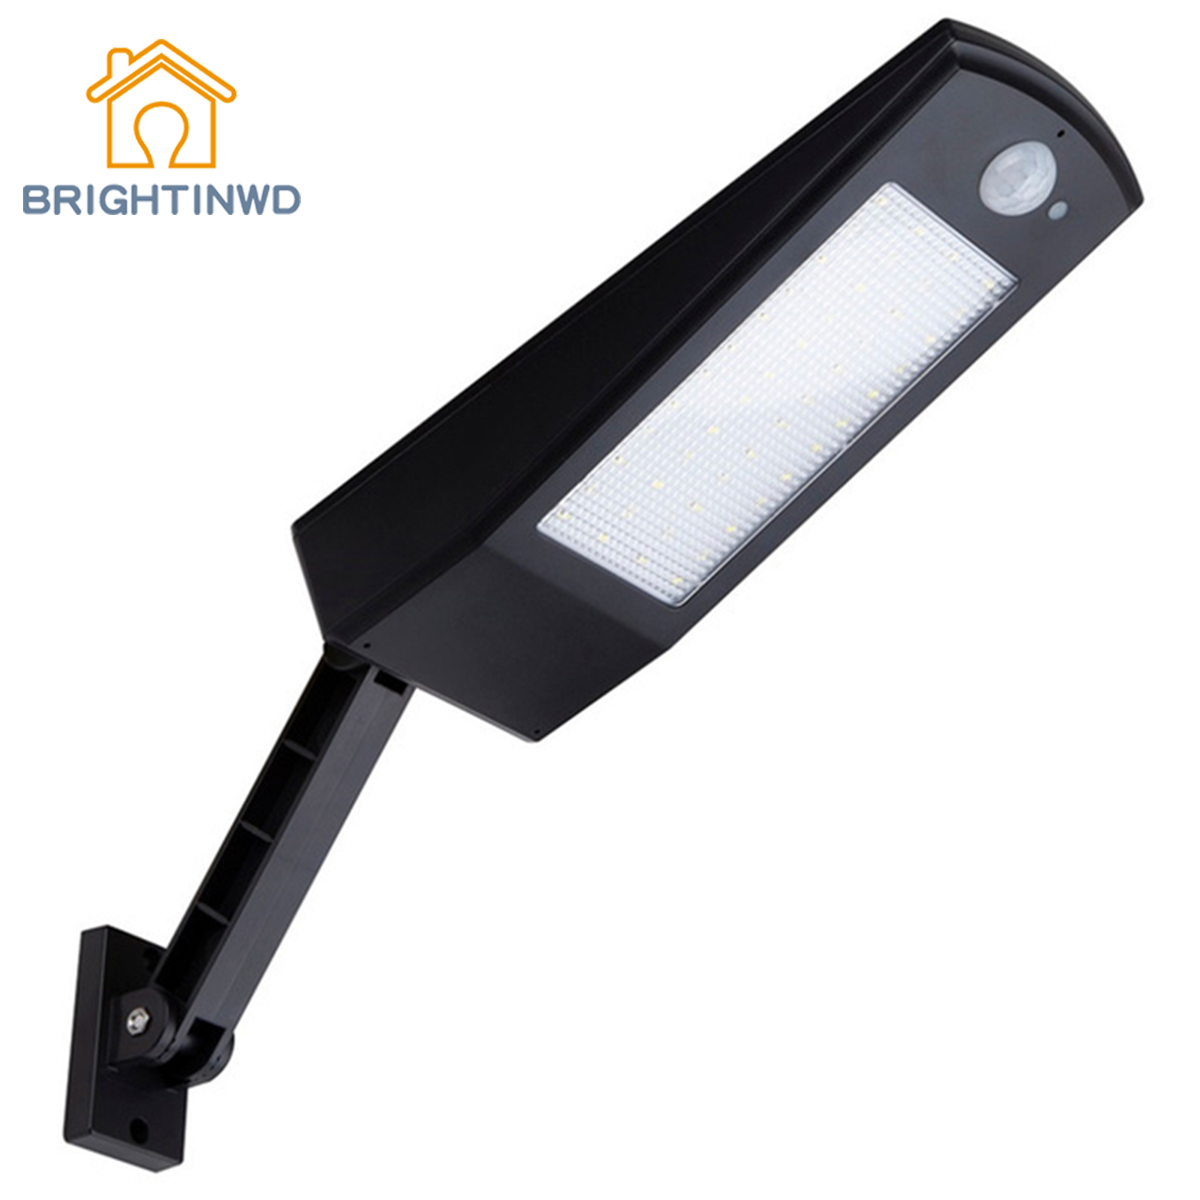 Led Solar Lamp Newest Design solar Light Garden Wireless Wall 900LM Auto PIR motion Sensor Waterproof outdoor Lighting ...